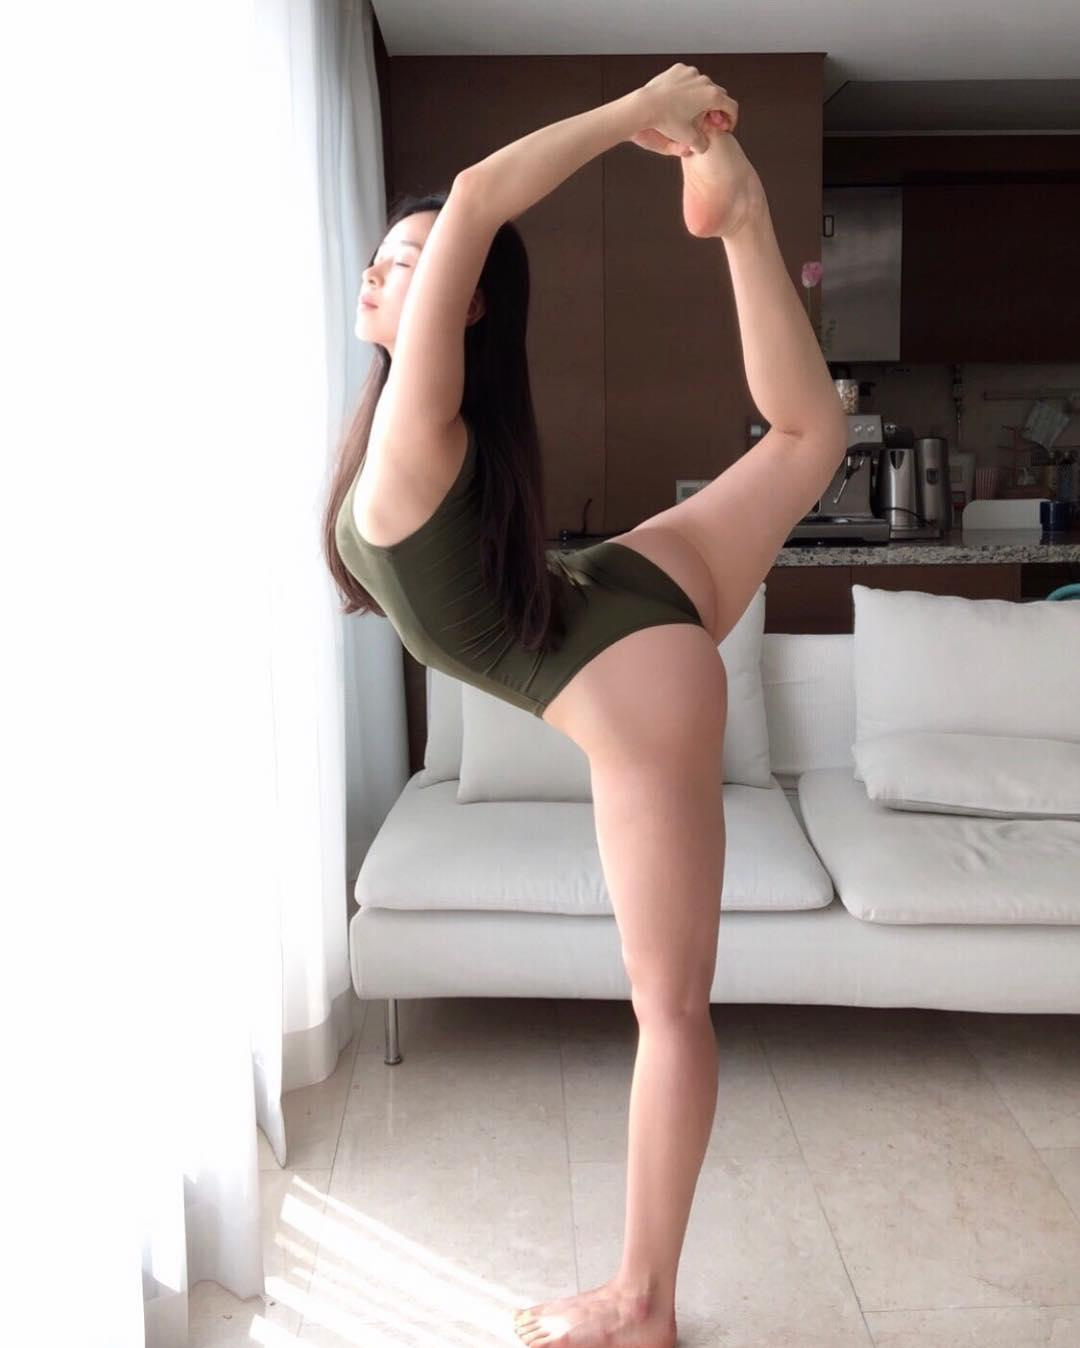 korean beauty in white body suit doing flexible yoga moves picture 8